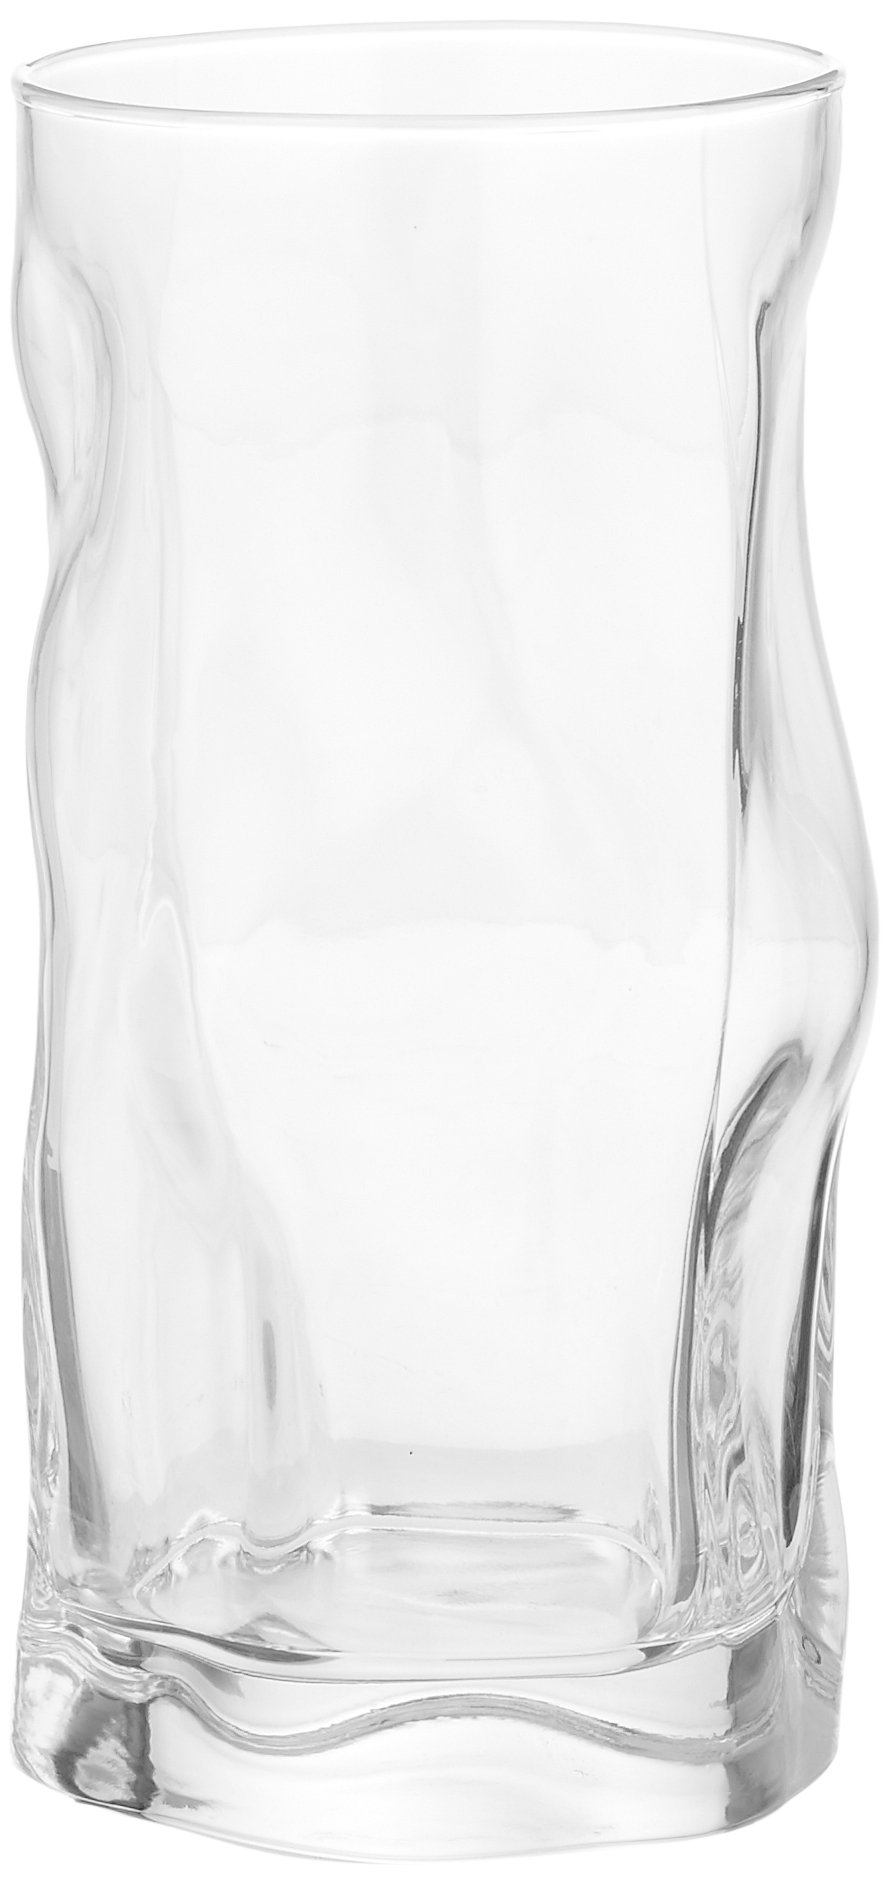 Bormioli Rocco Sorgente  15.5 oz. Cooler Glasses, Set of 6,